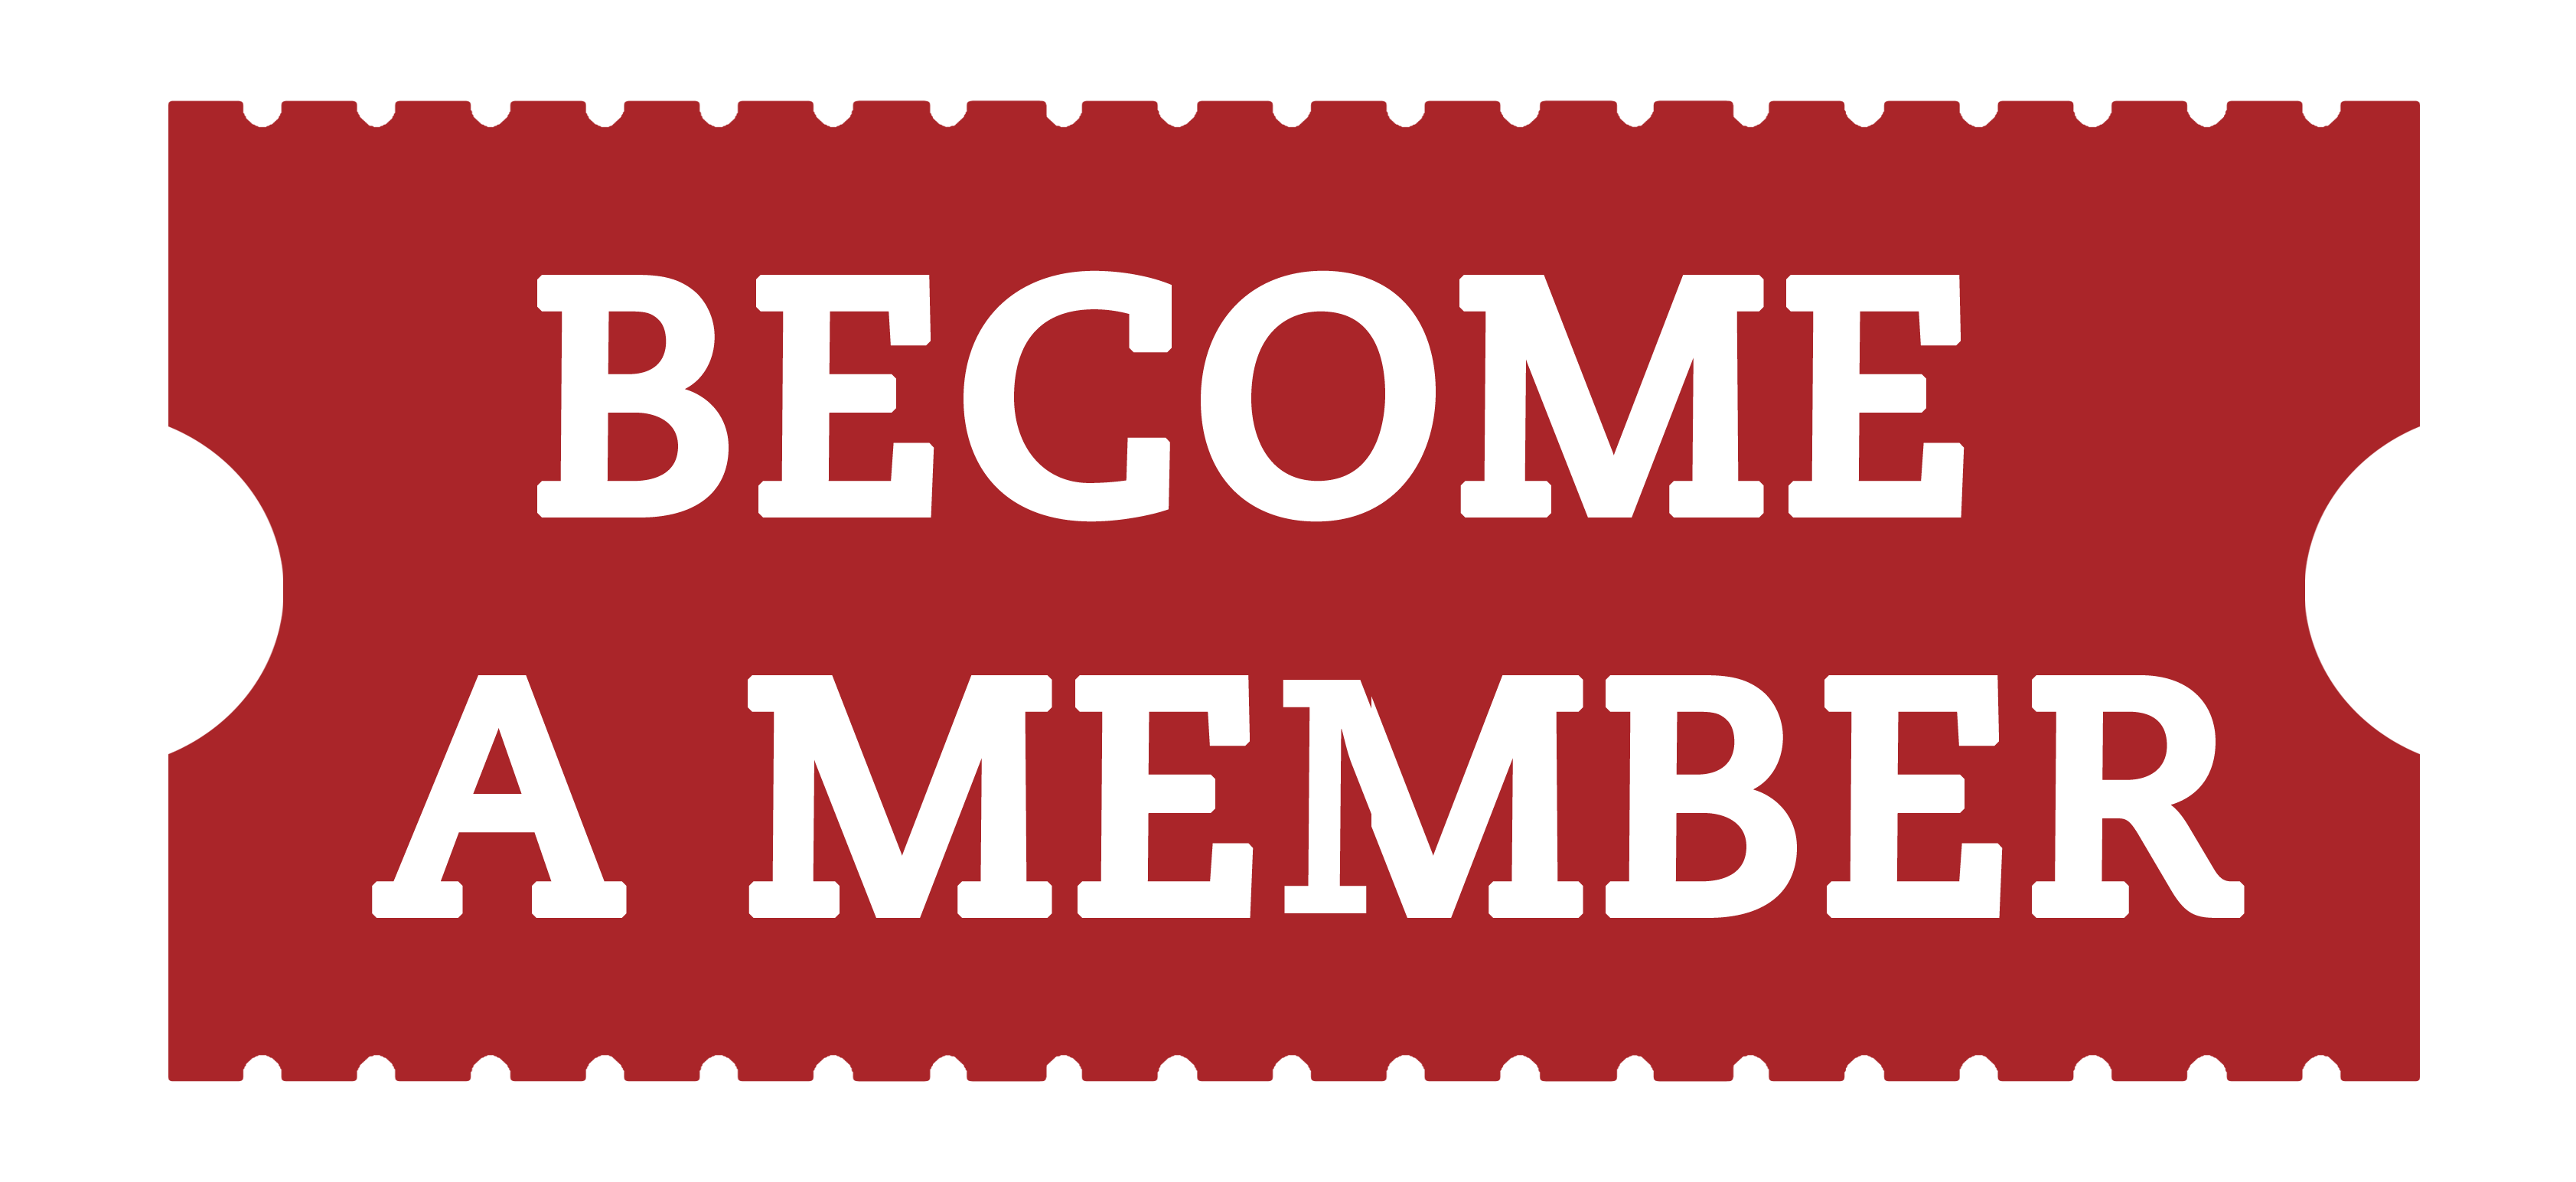 about becoming member